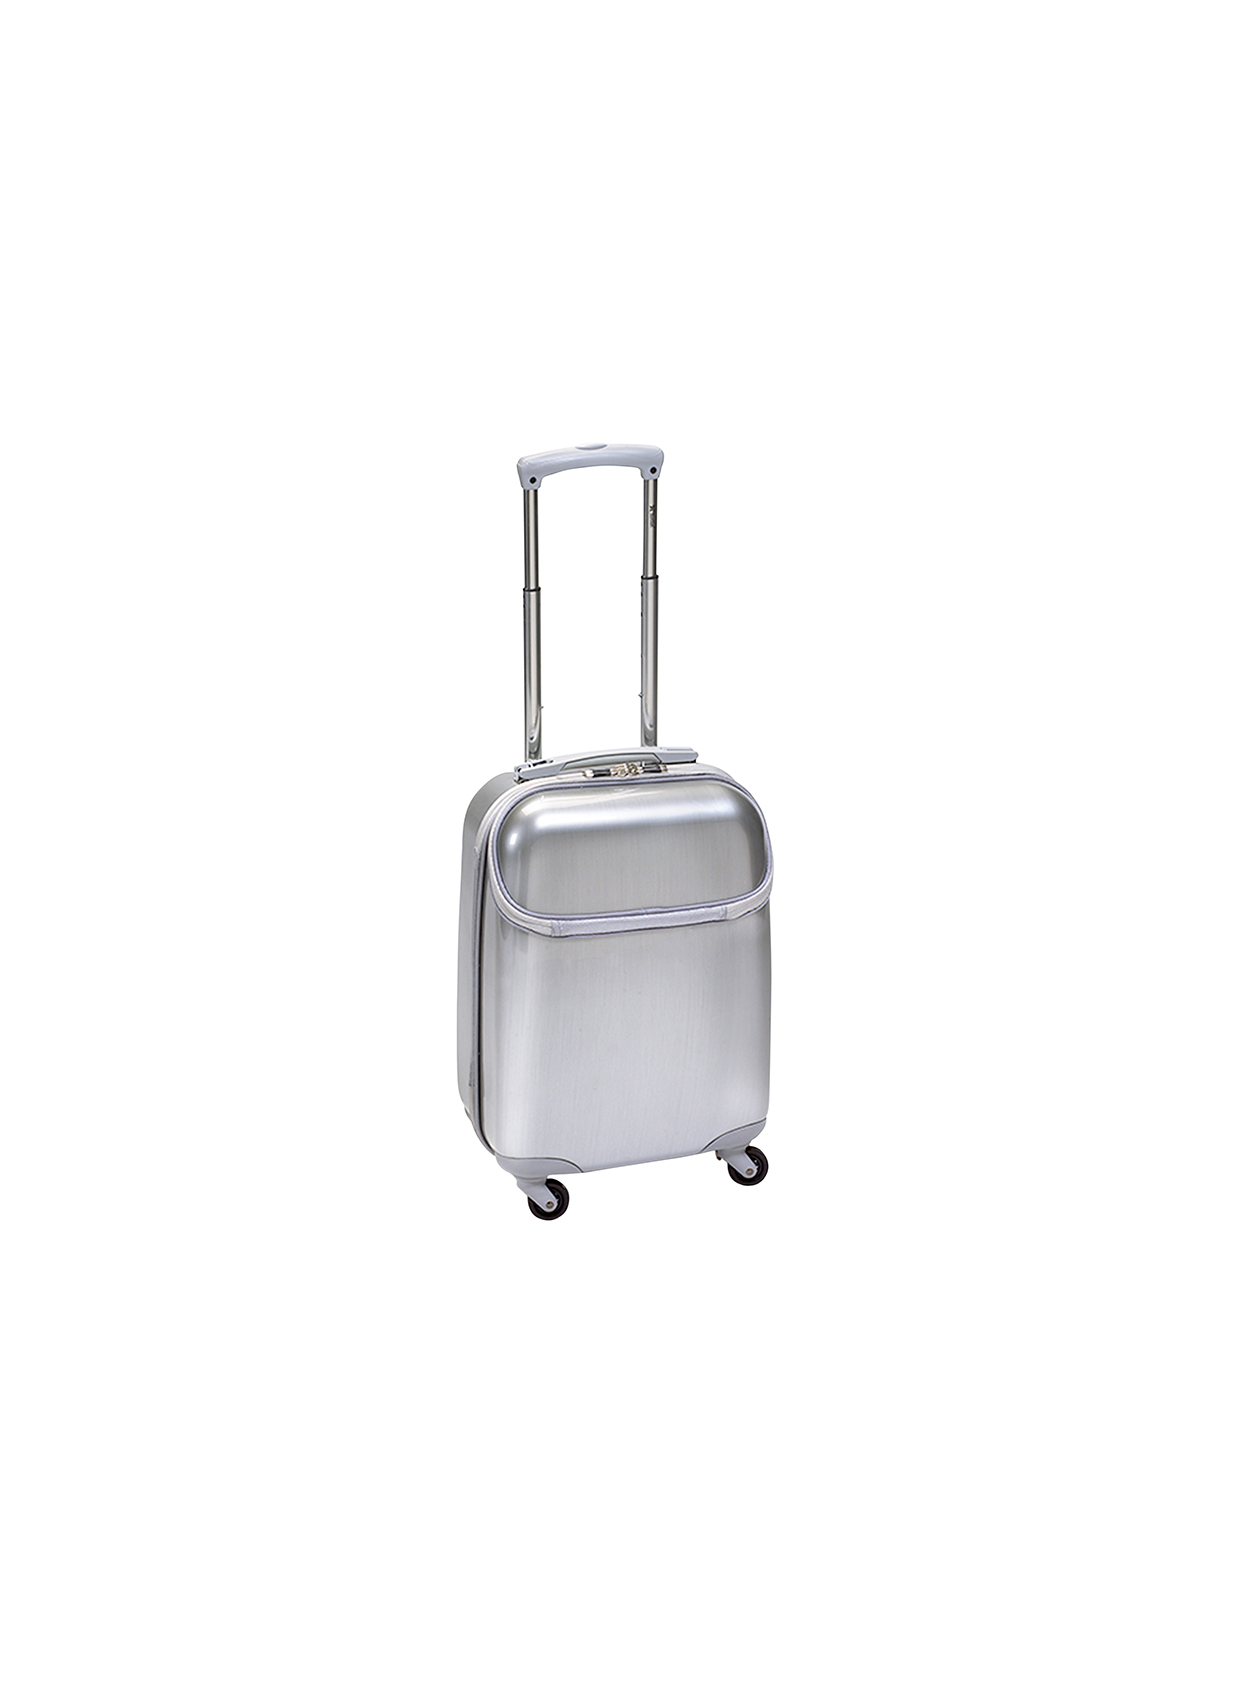 Sharper Image Multi-Access Carry-On Luggage